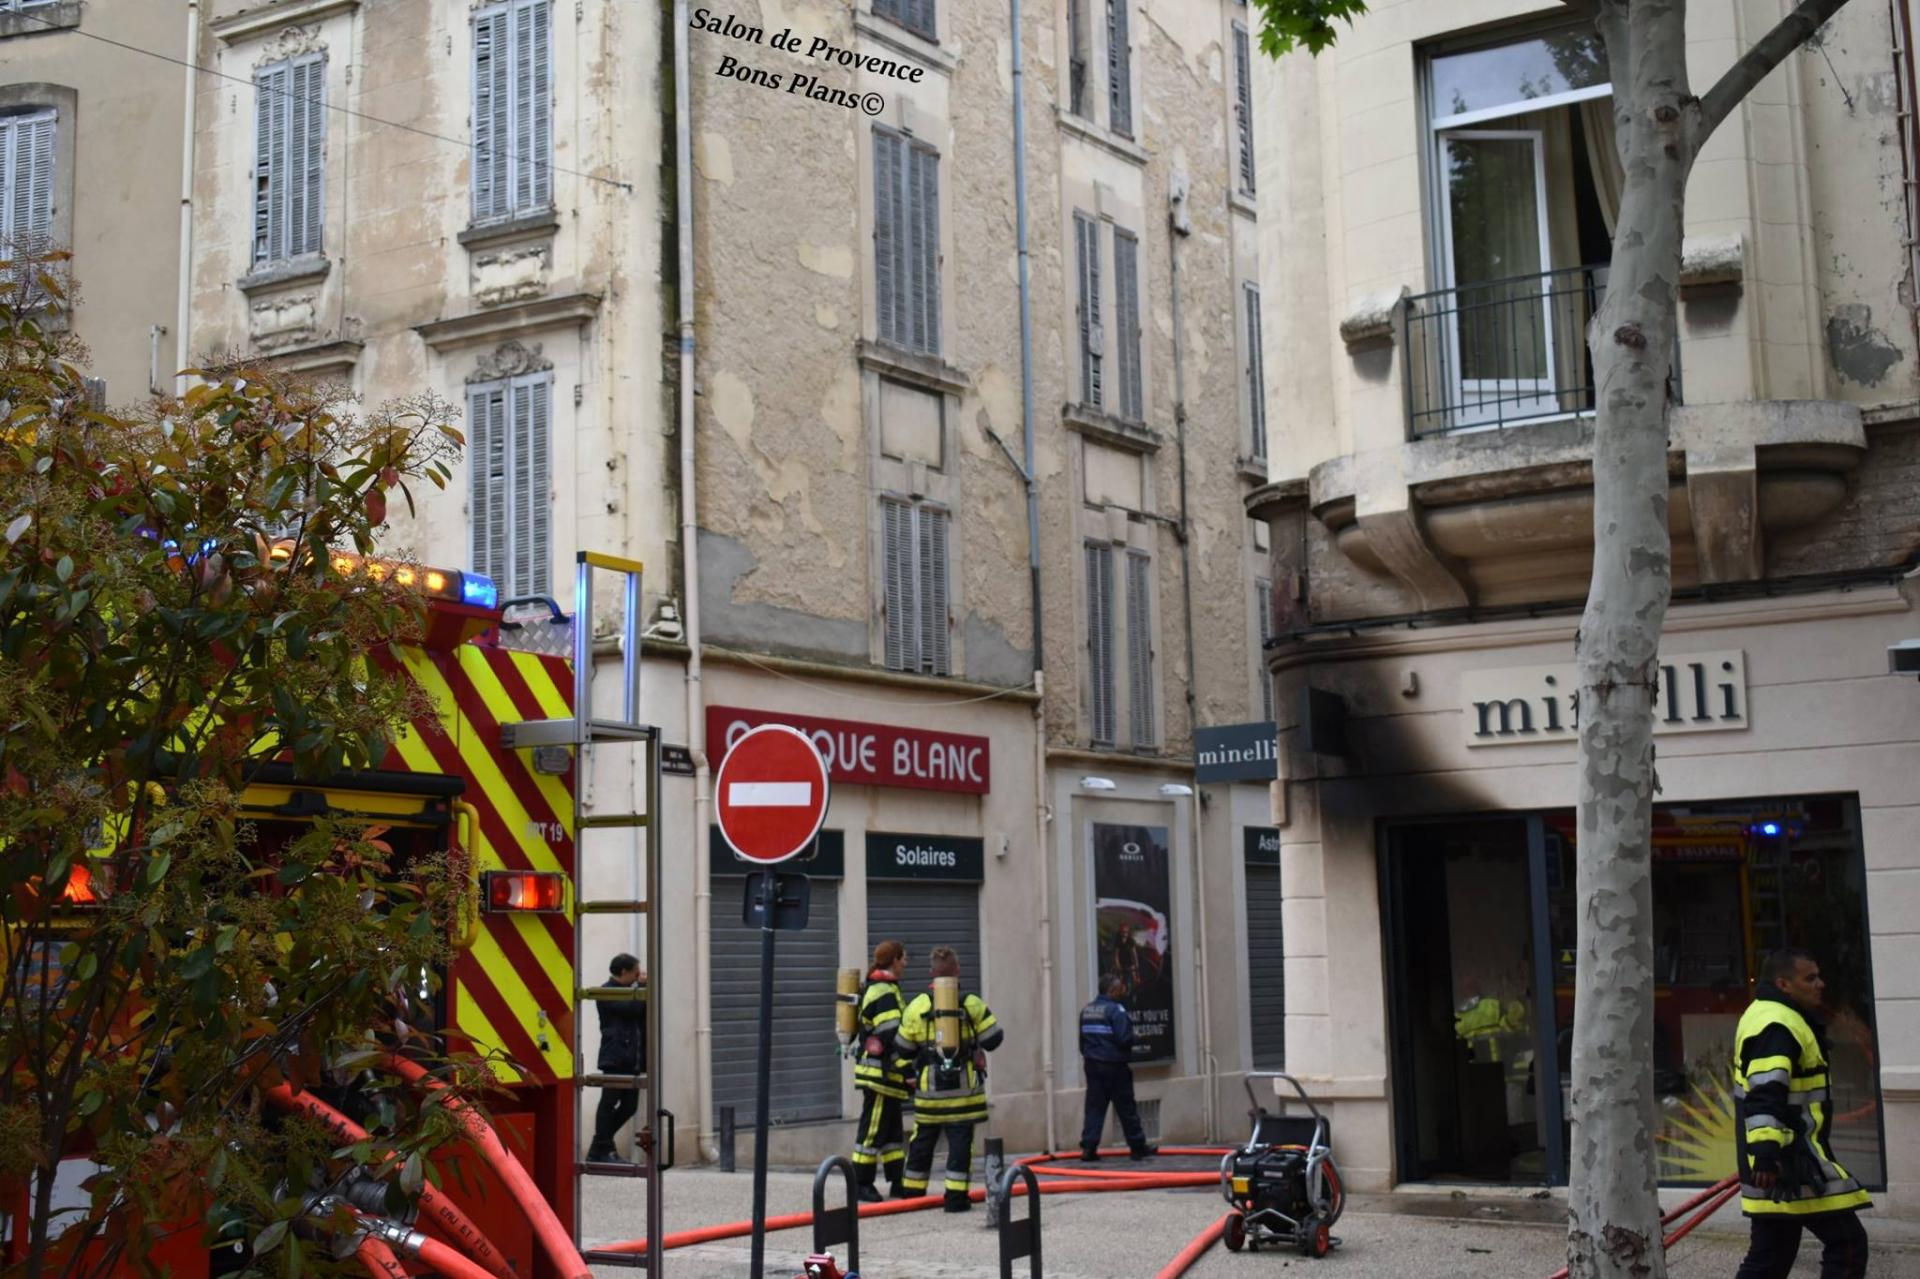 Bravo et merci aux pompiers de salon de provence for Presto pizza salon de provence